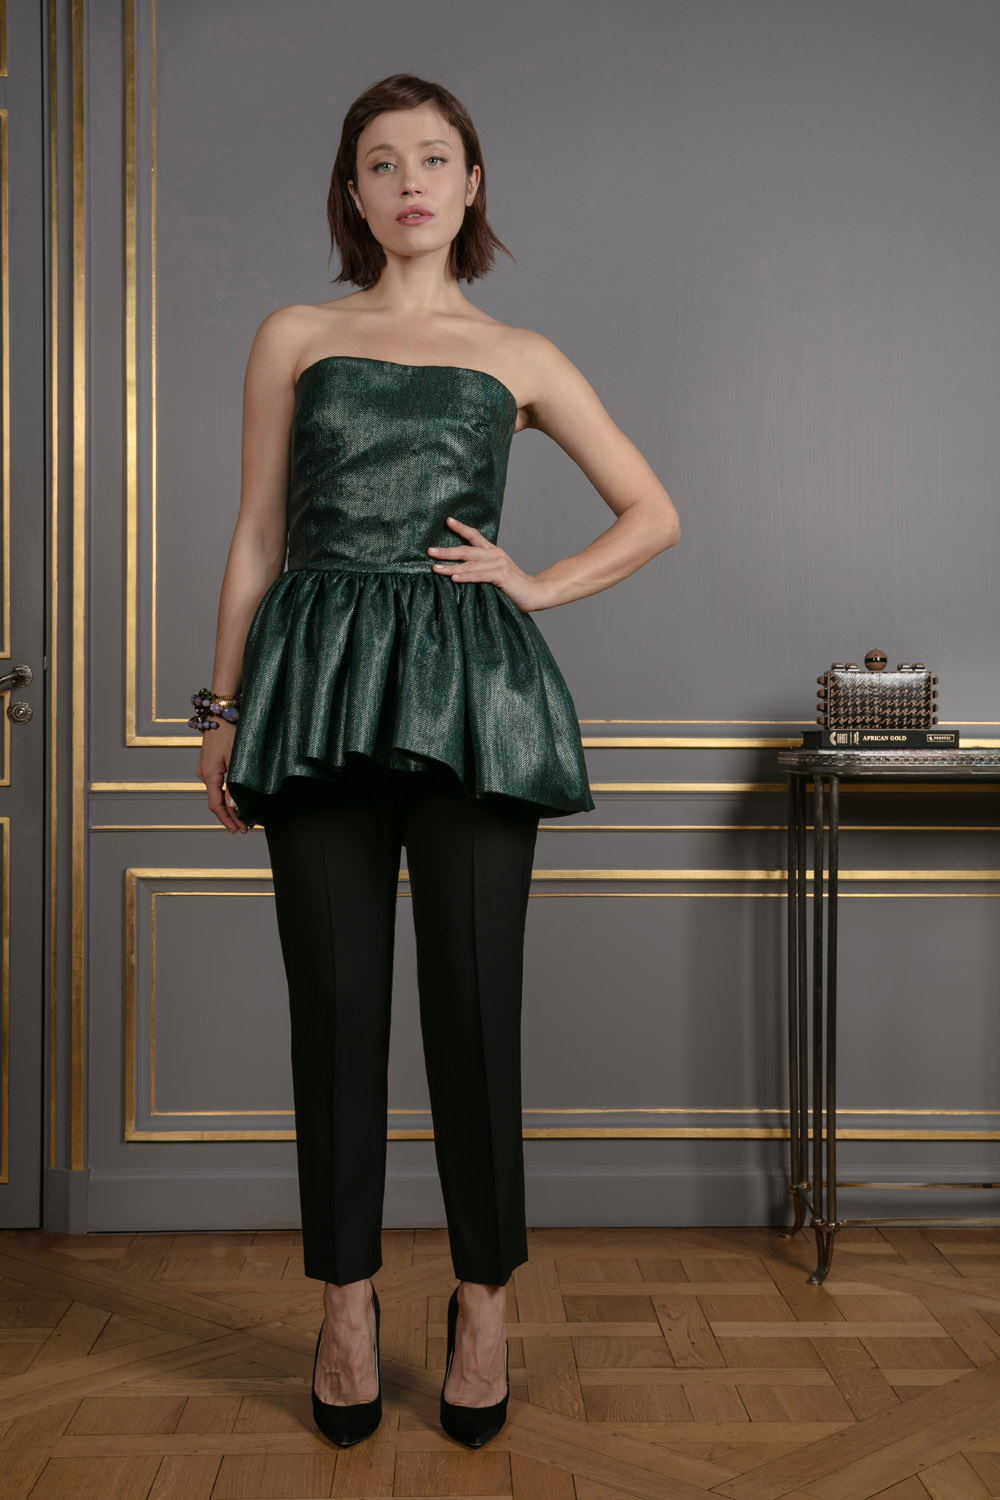 a8bad86aa0 boutiquelessuites.com - LesSuitesOnline buy Martin Grant - Straight black  pants on our website